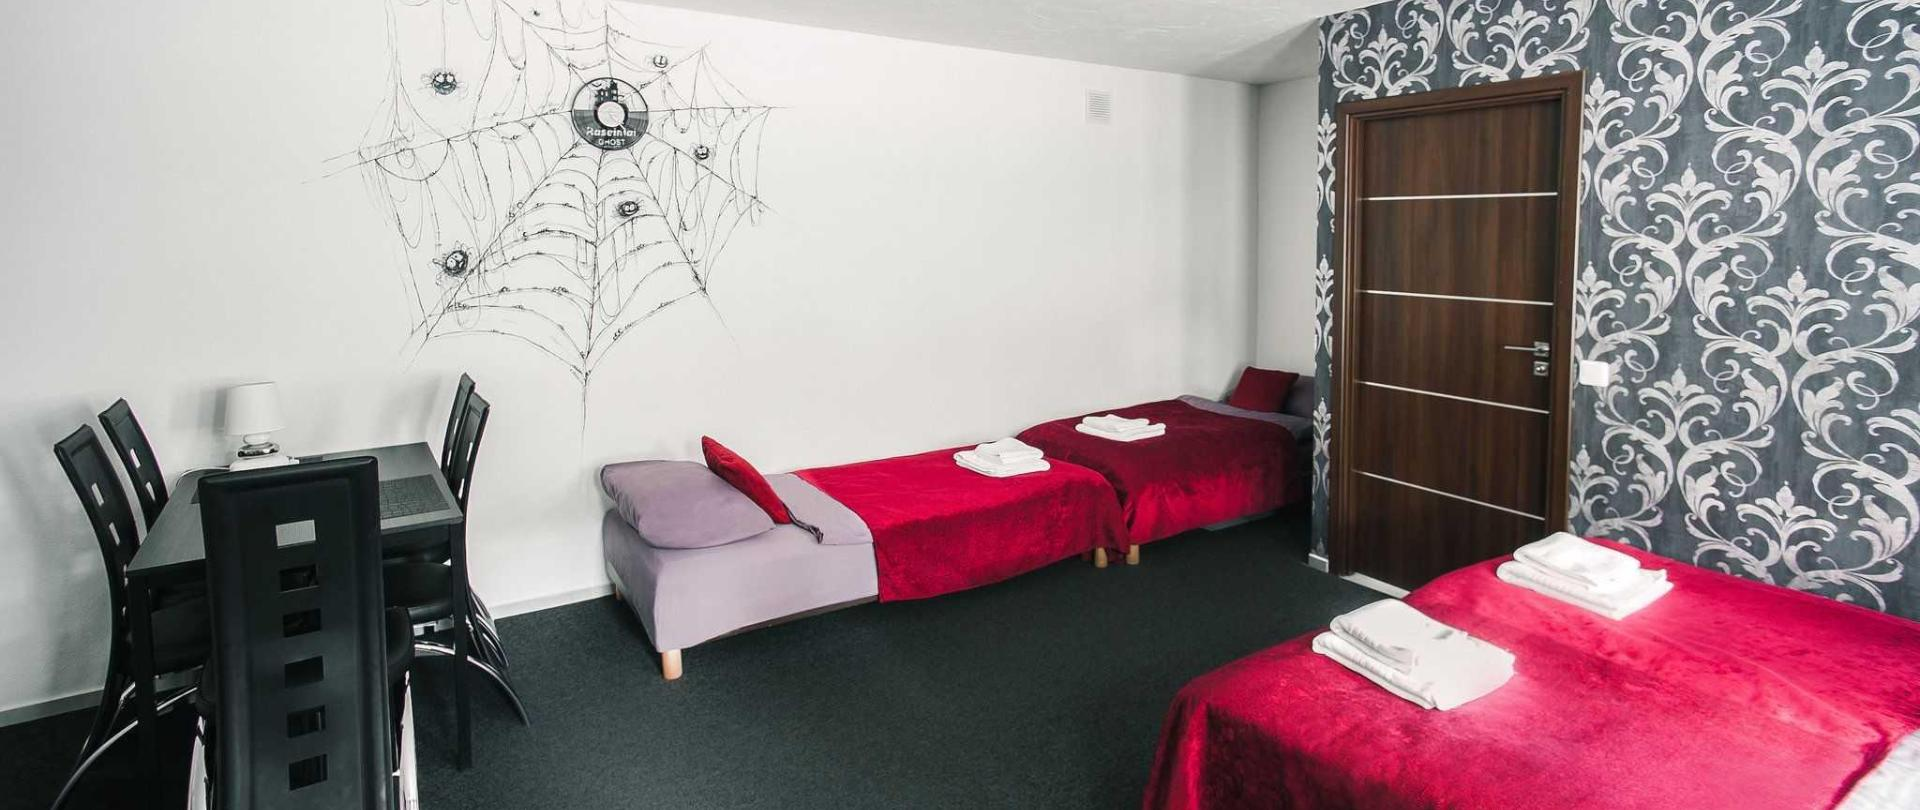 room-cobweb-beds.JPG